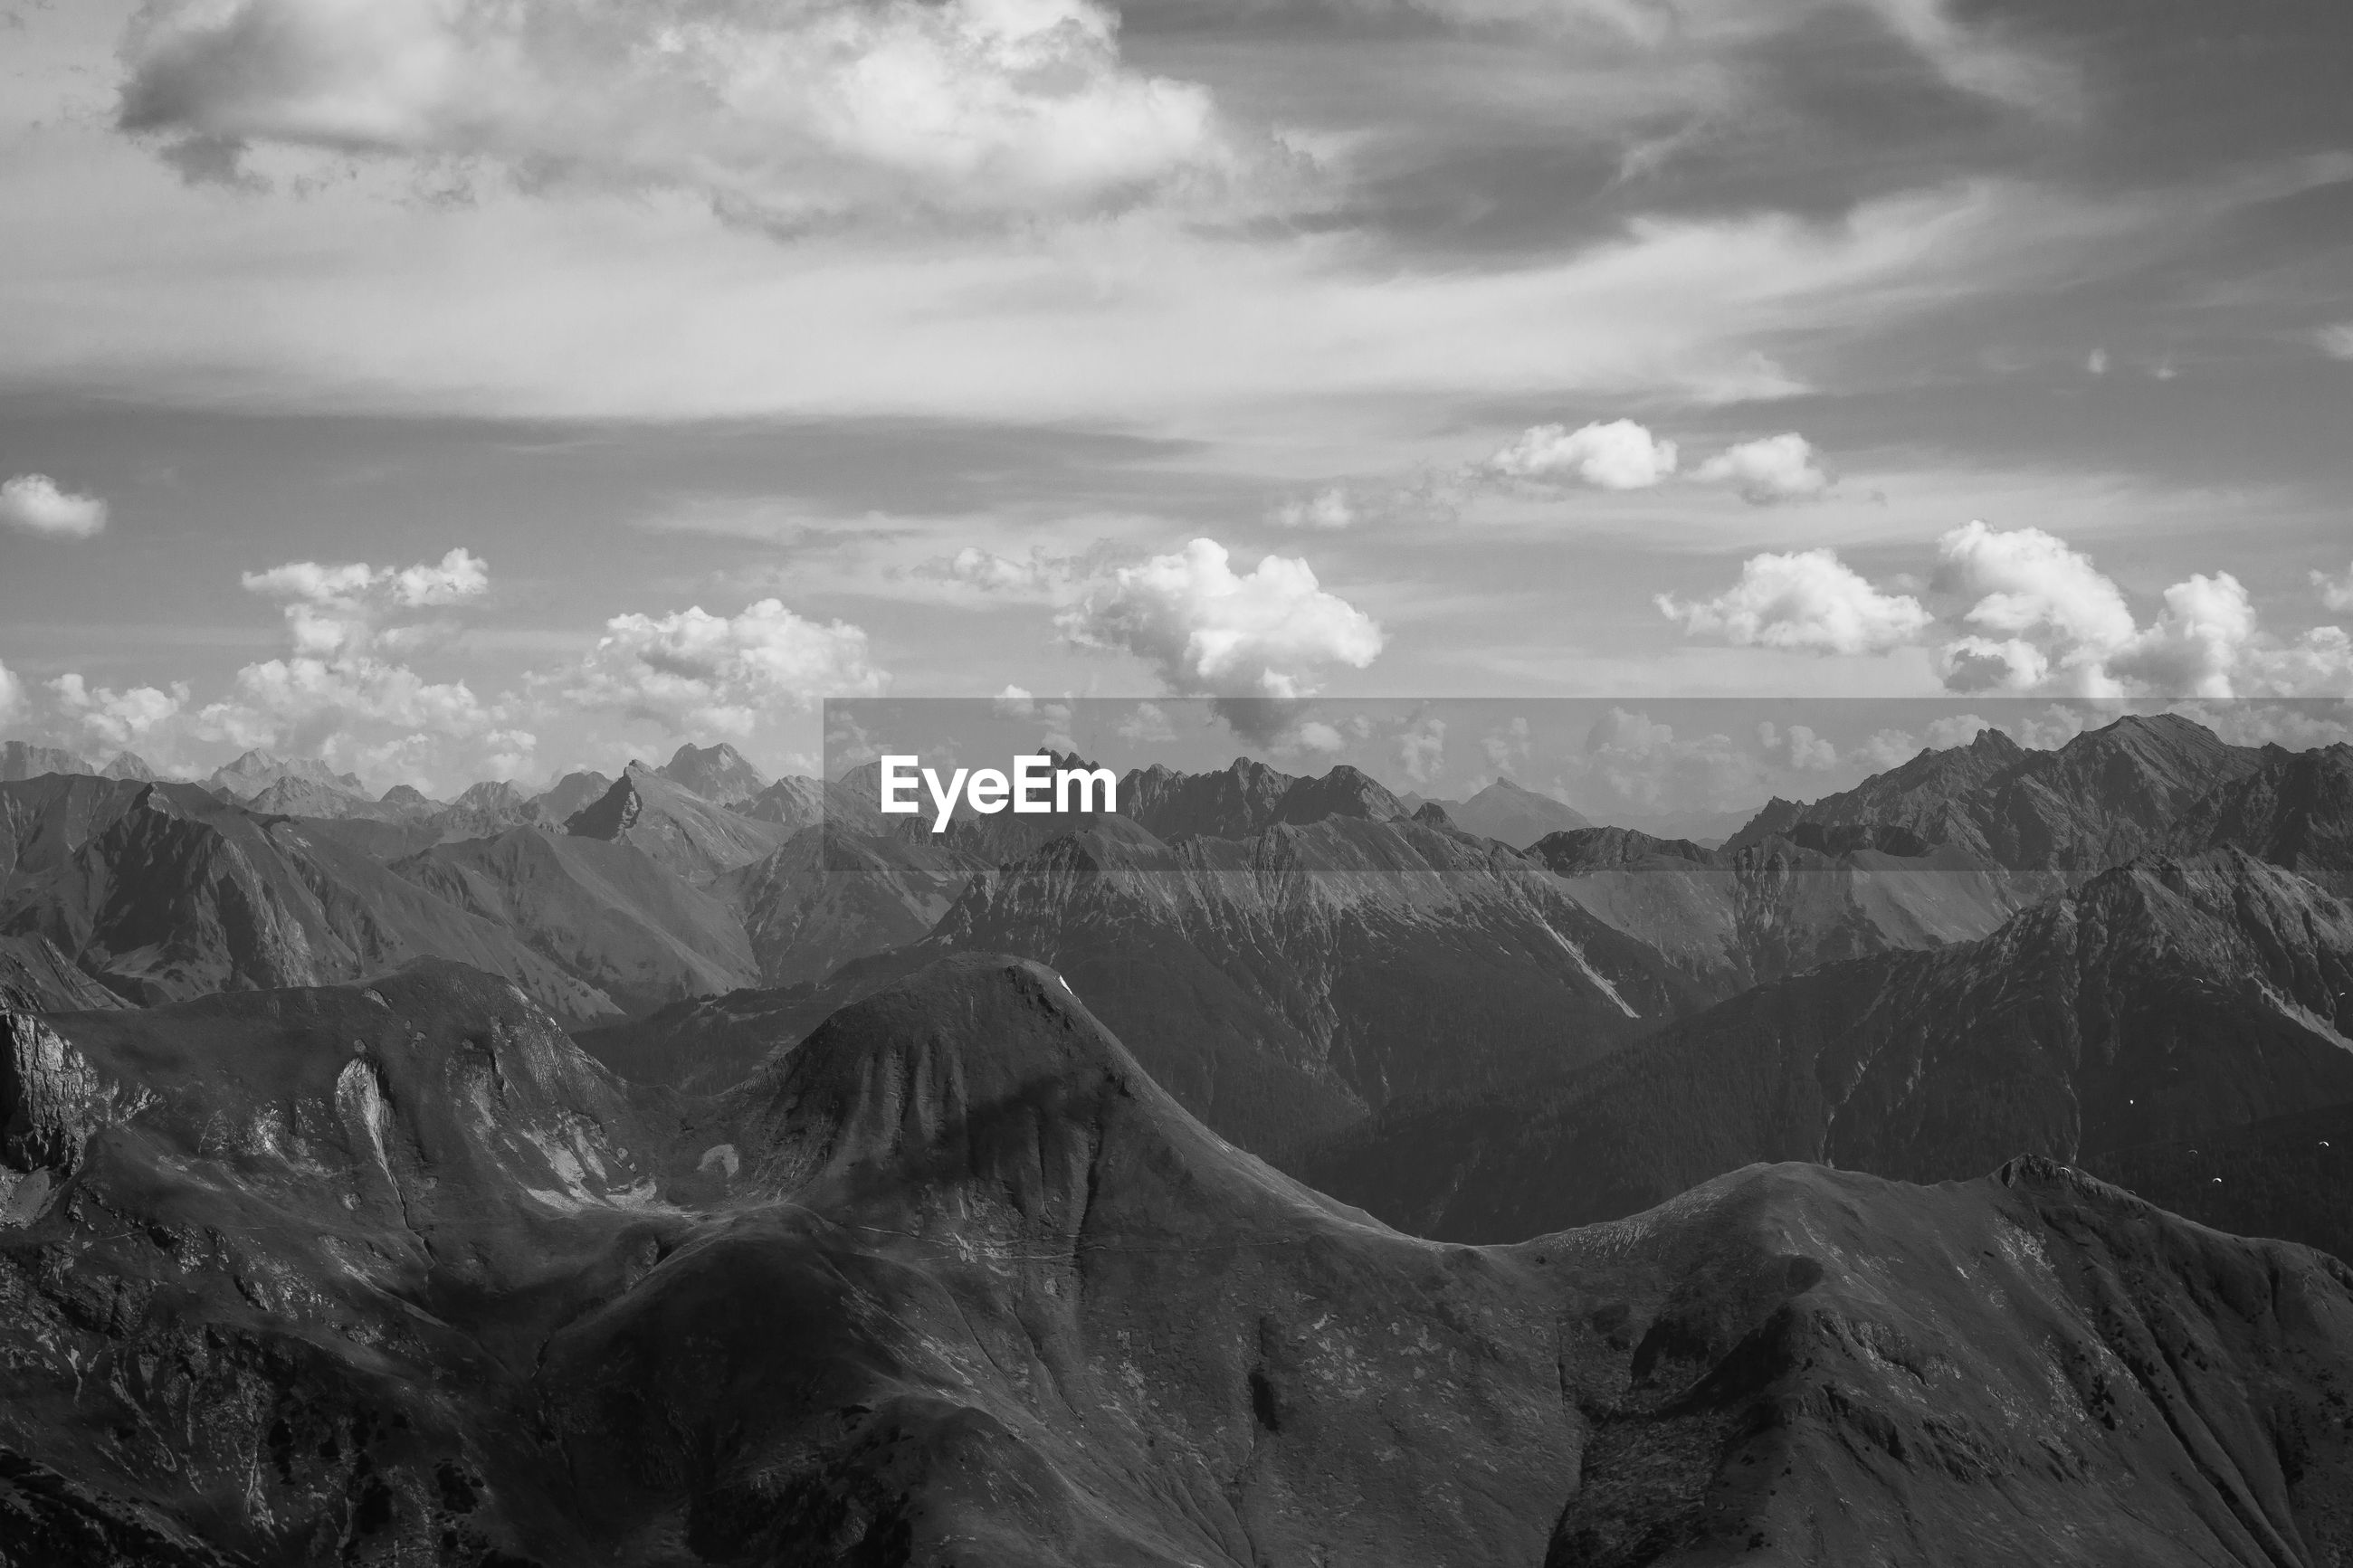 SCENIC VIEW OF DRAMATIC LANDSCAPE